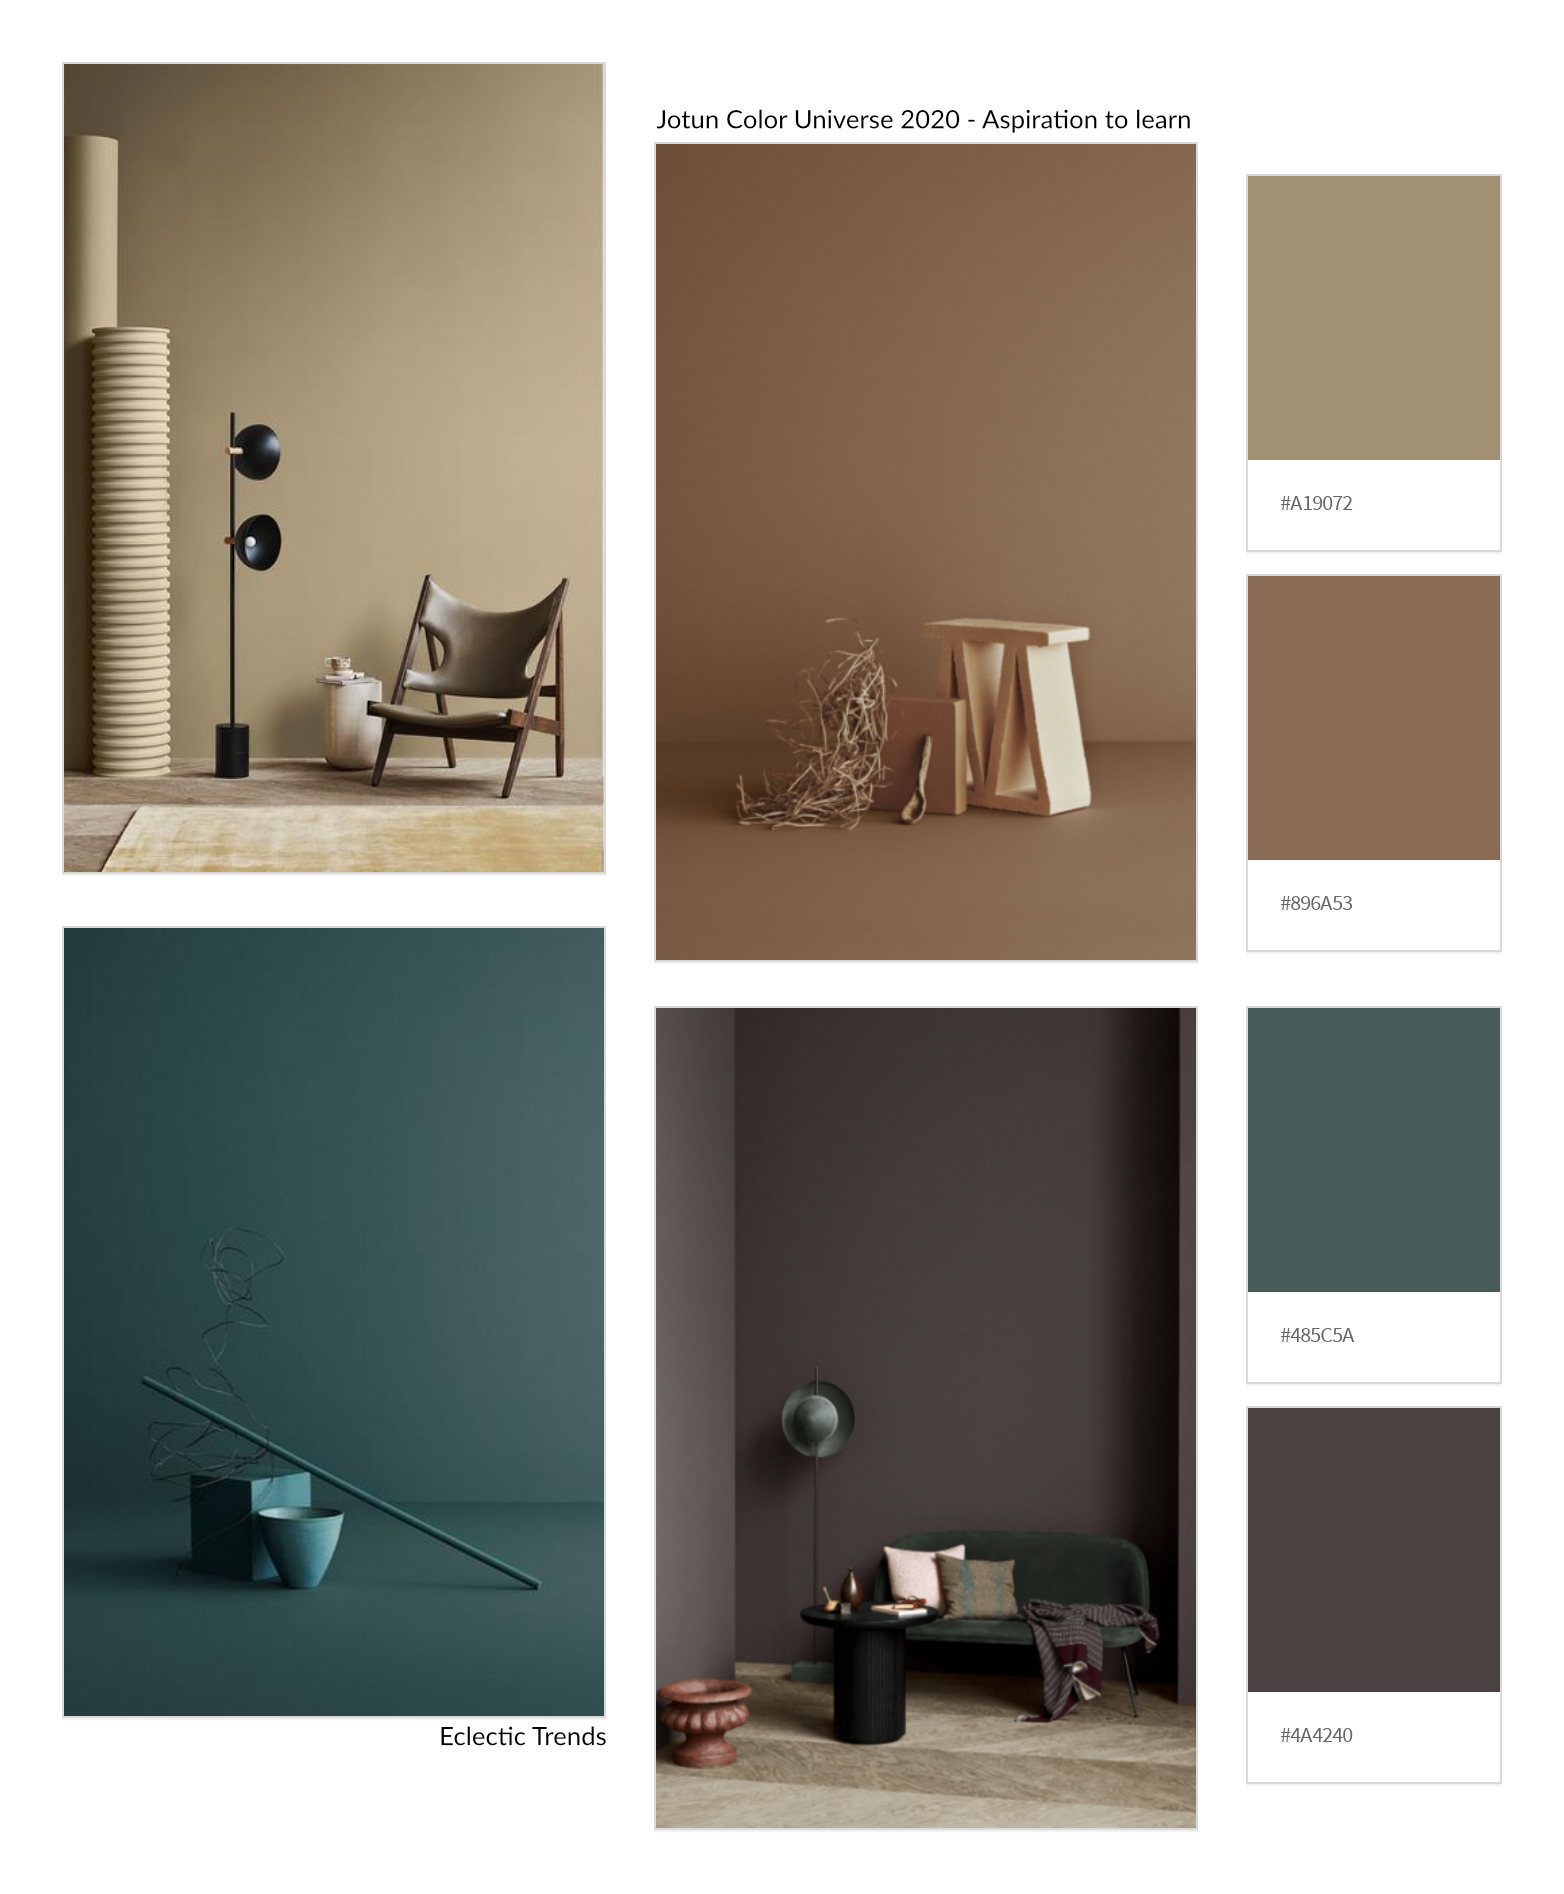 Photography Trends 2020.Eclectic Trends 3 Color Universes 2020 By Norwegian